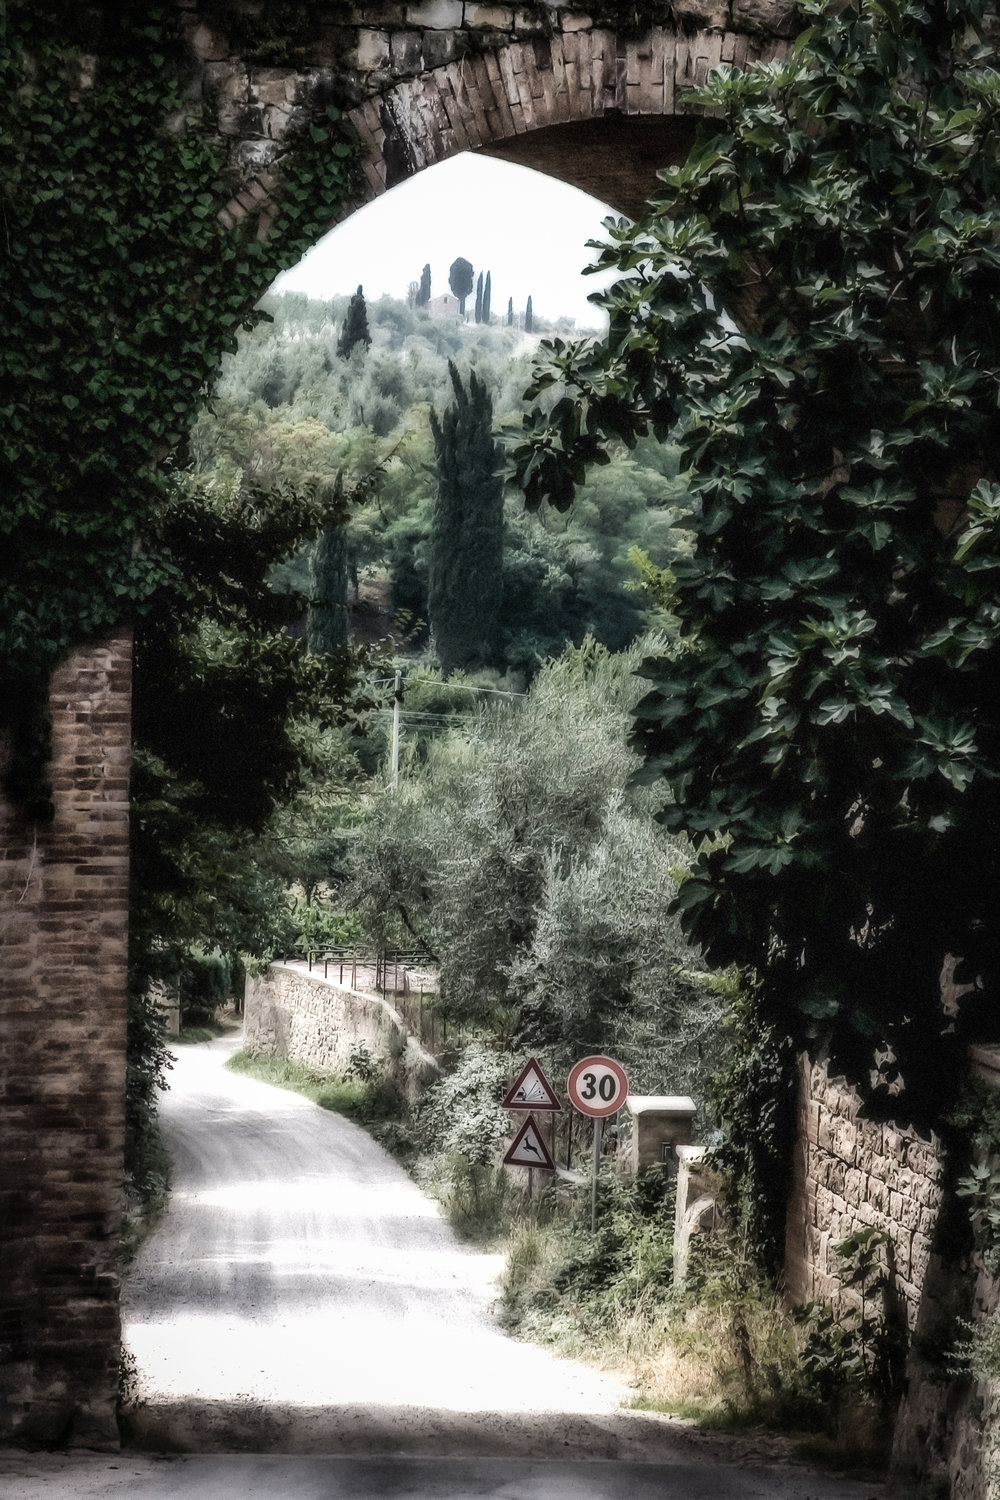 Road to Somewhere_Italy_J2048x3072-48328-R.jpg